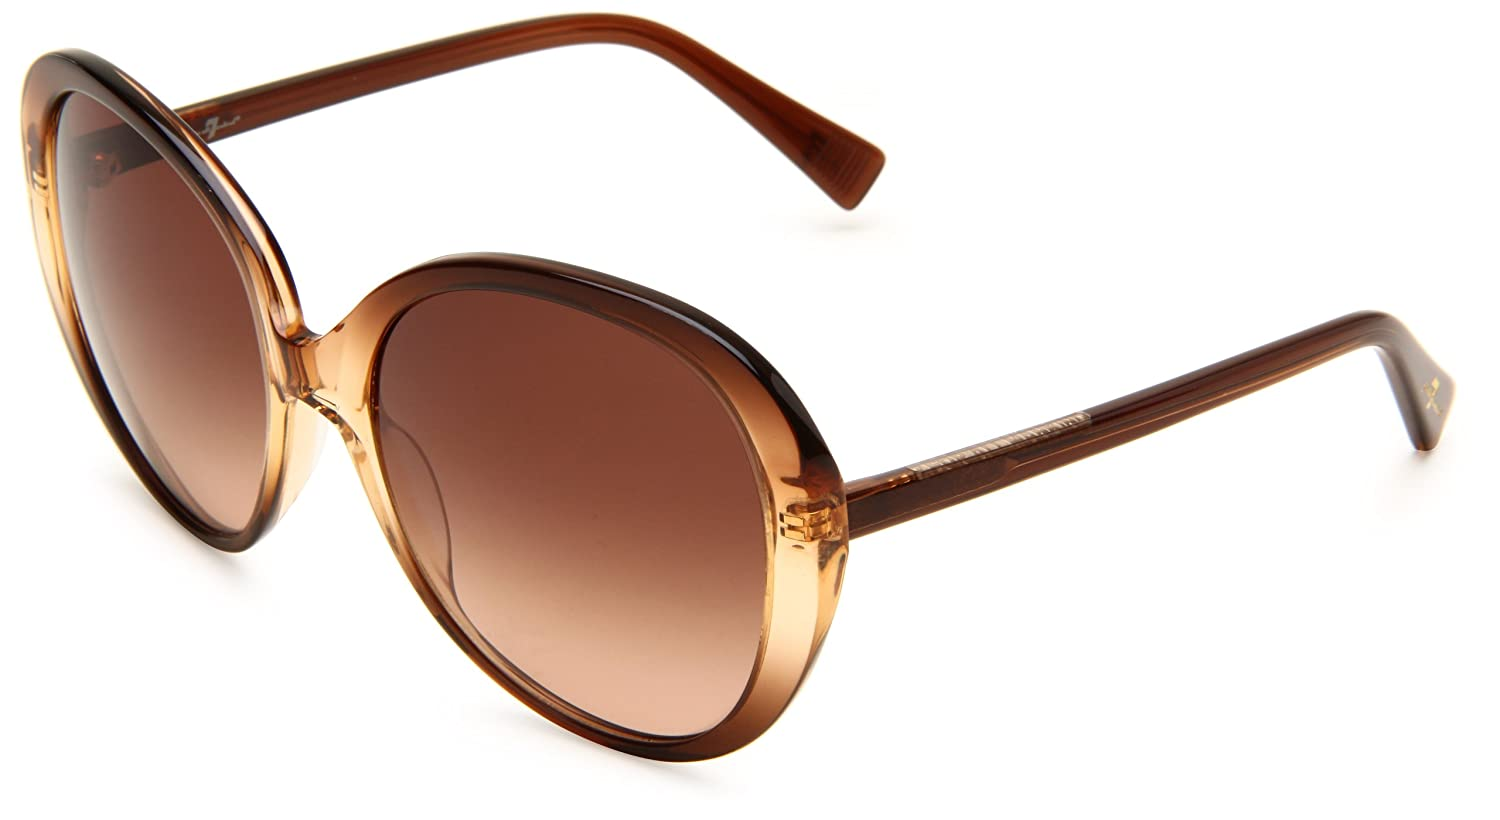 7 For All Mankind Magnolia Round Sunglasses